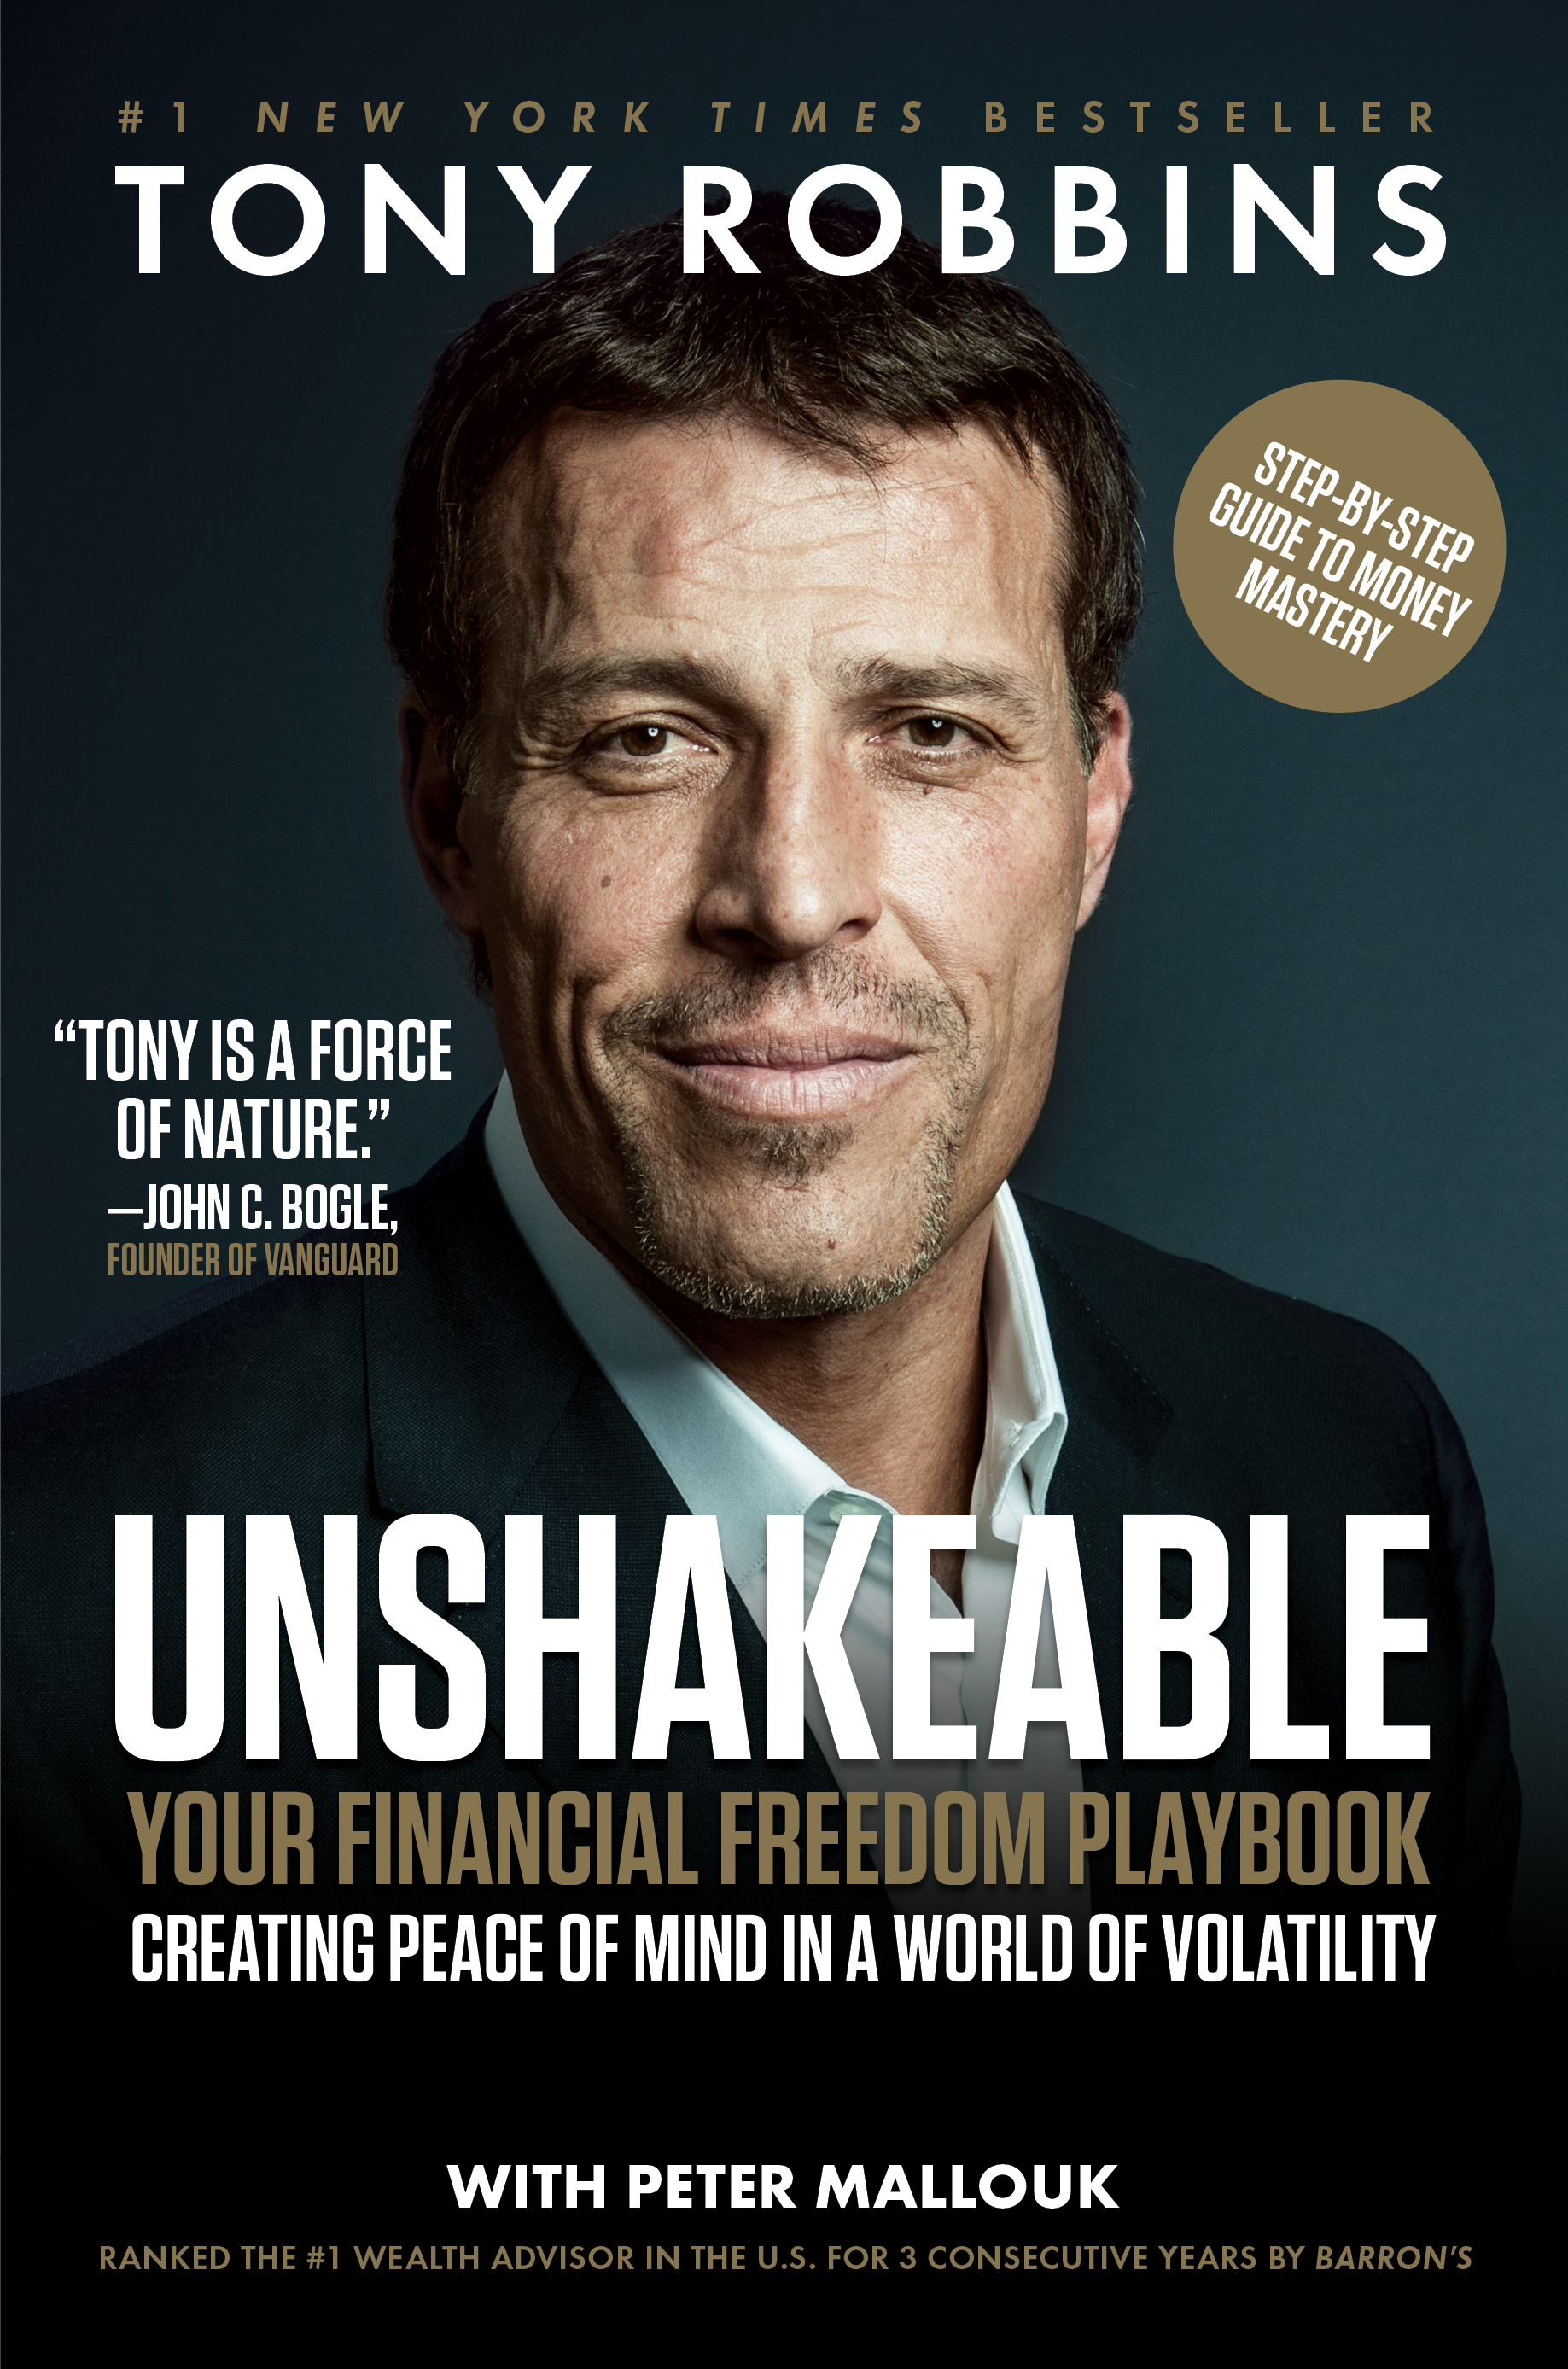 Unshakeable cover image Tony Robbins book